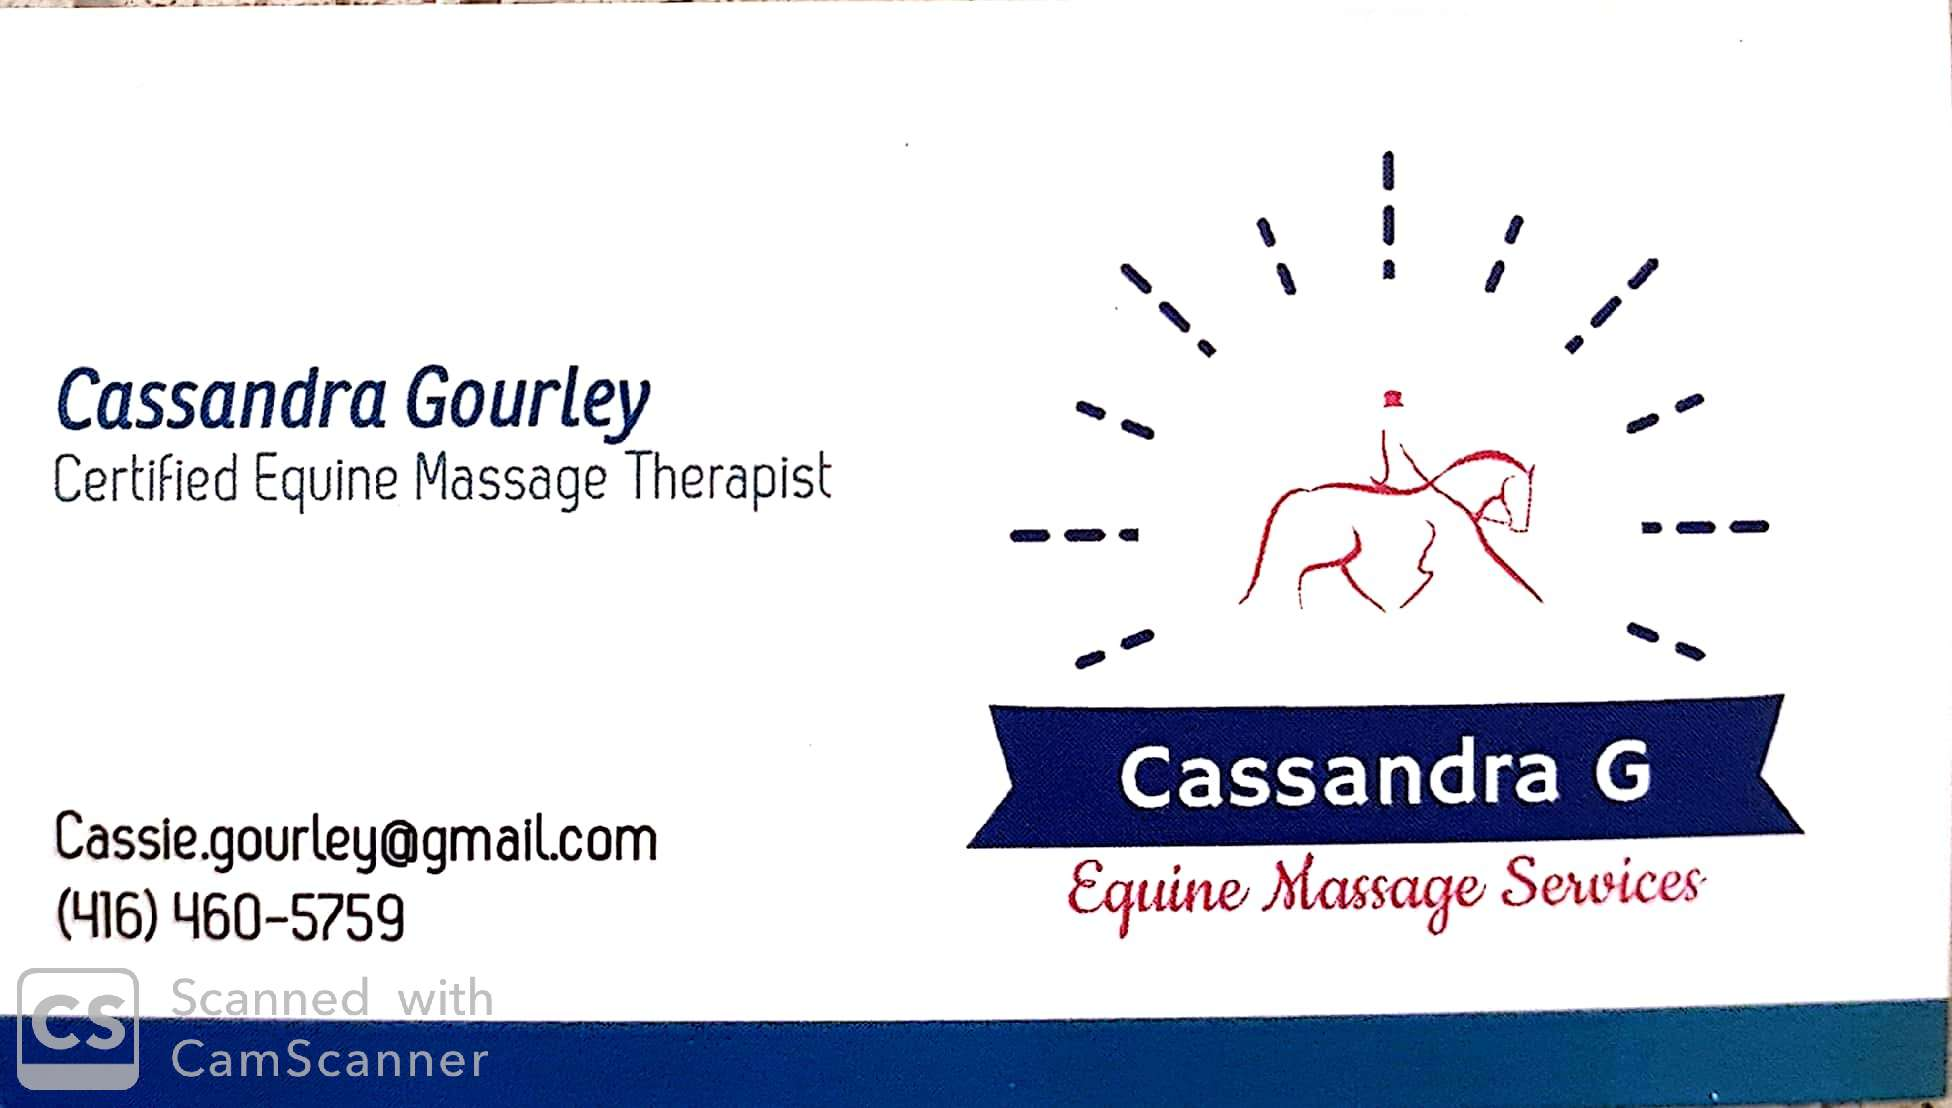 Cassandra G, Equine Massage Services